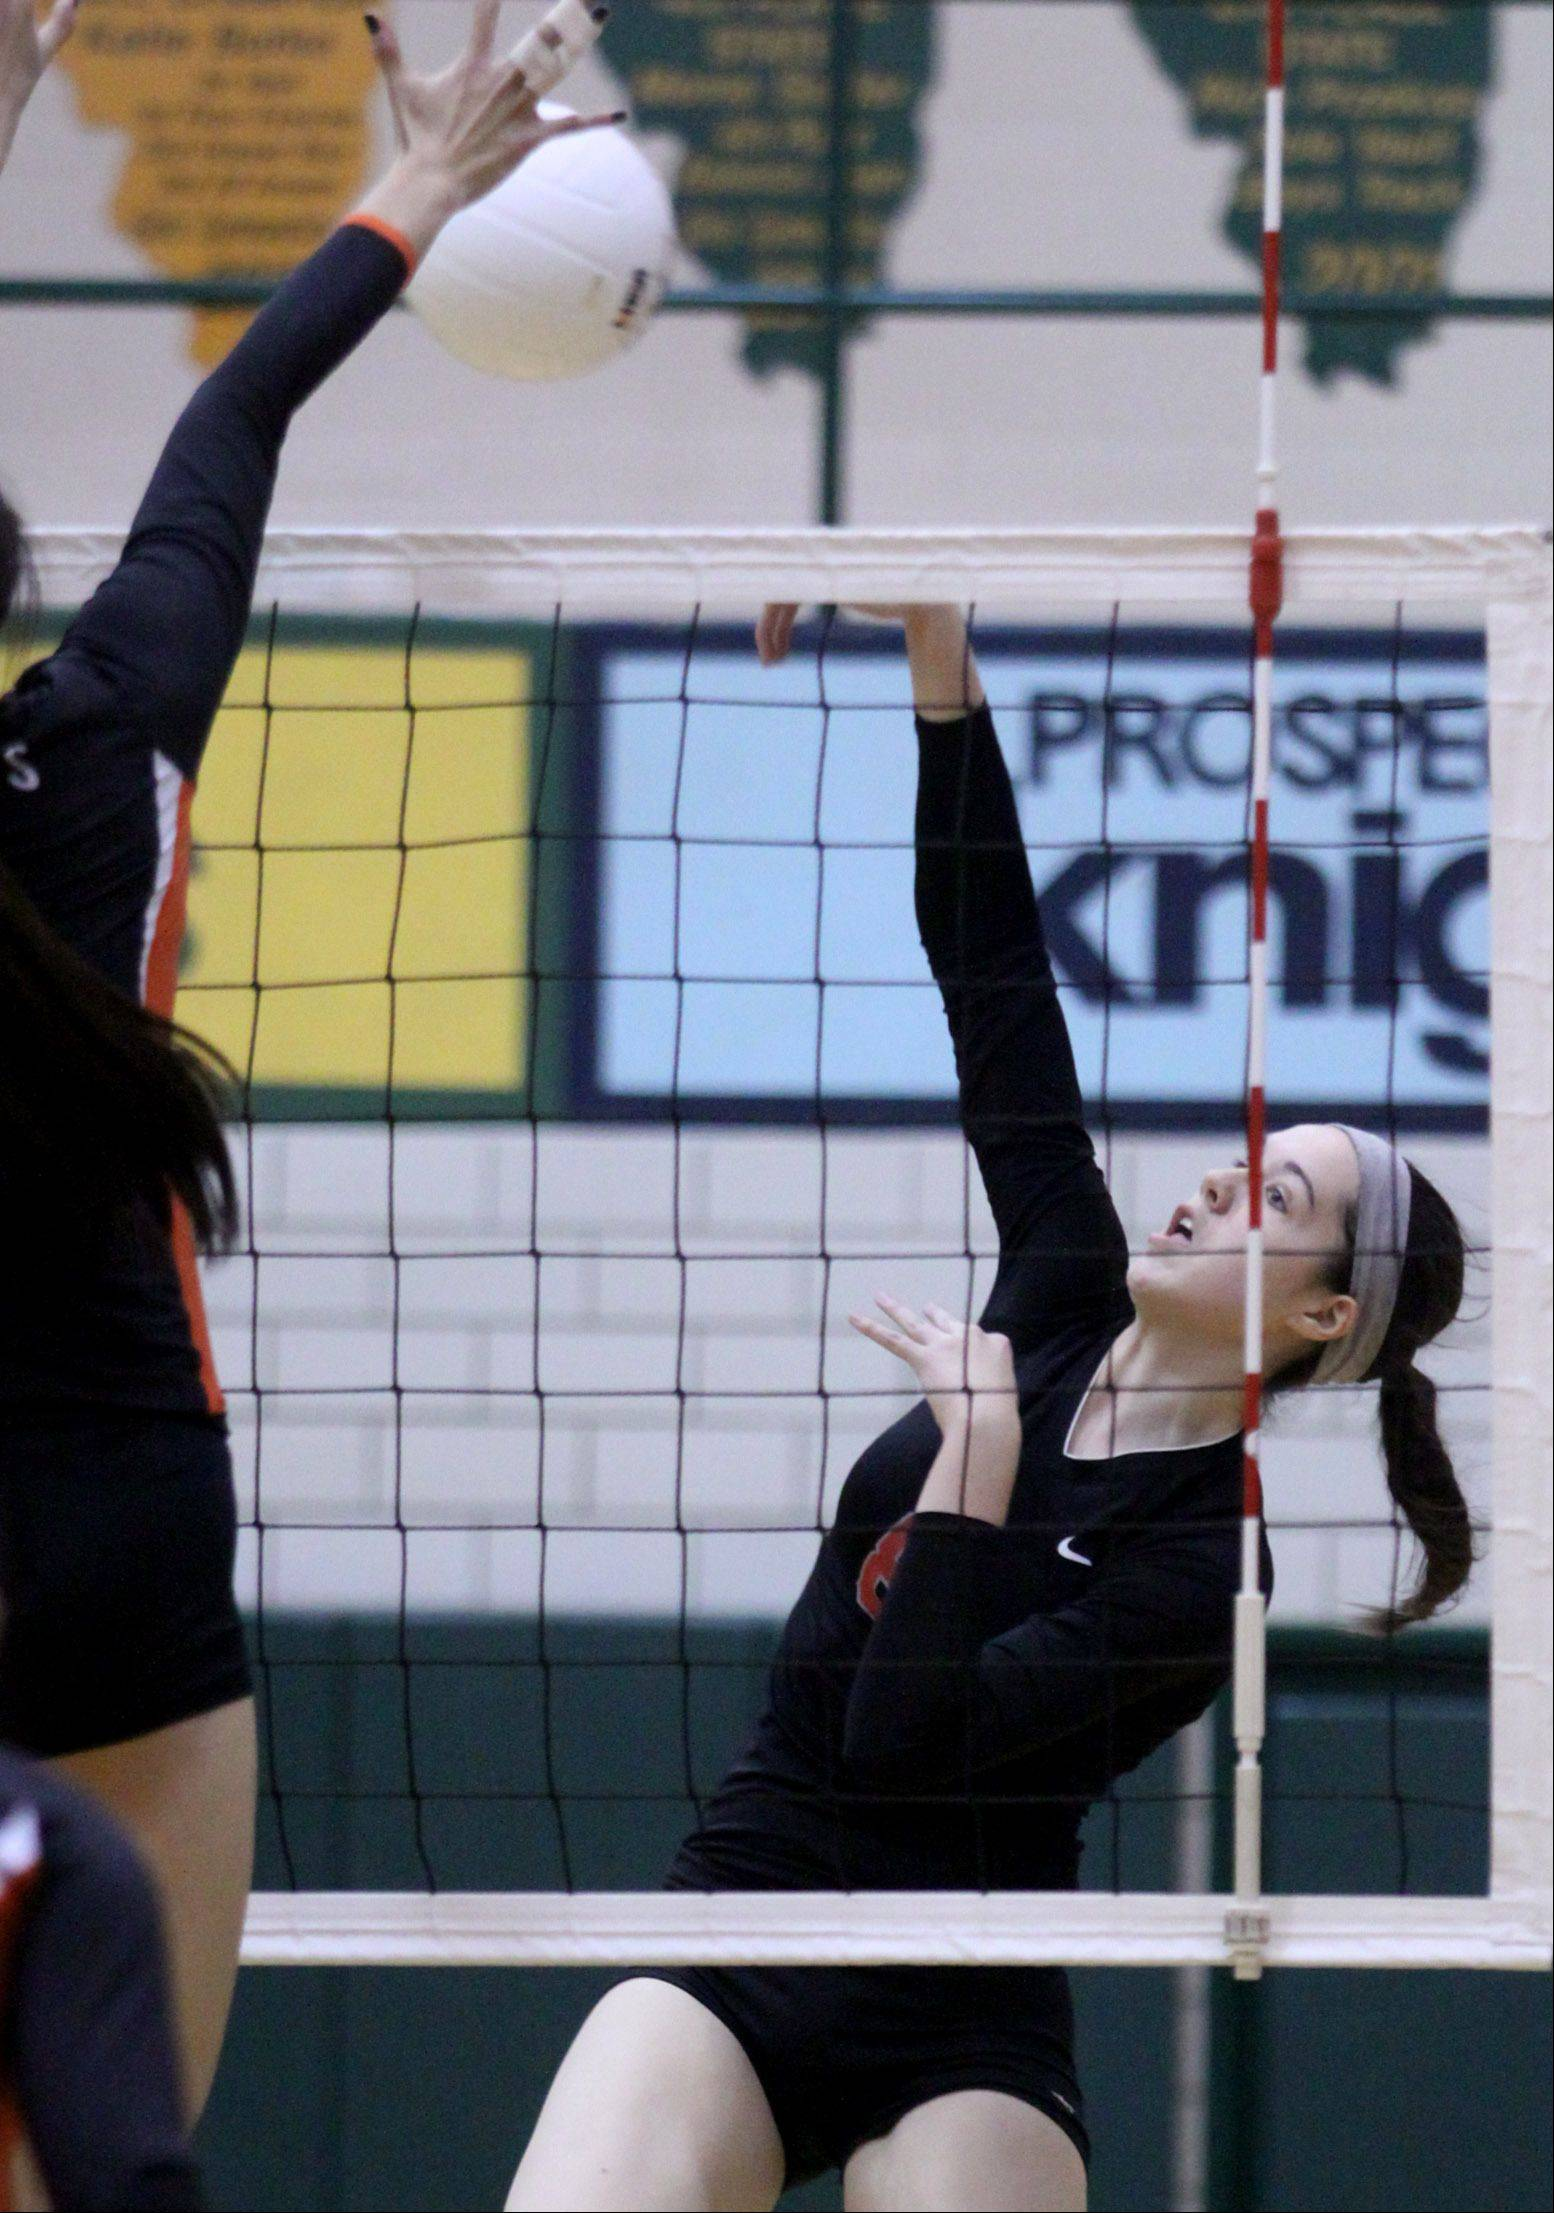 Palatine's Val Soderstrom blasts the ball over the net against Libertyville during a sectional title action at Fremd High on Thursday night.